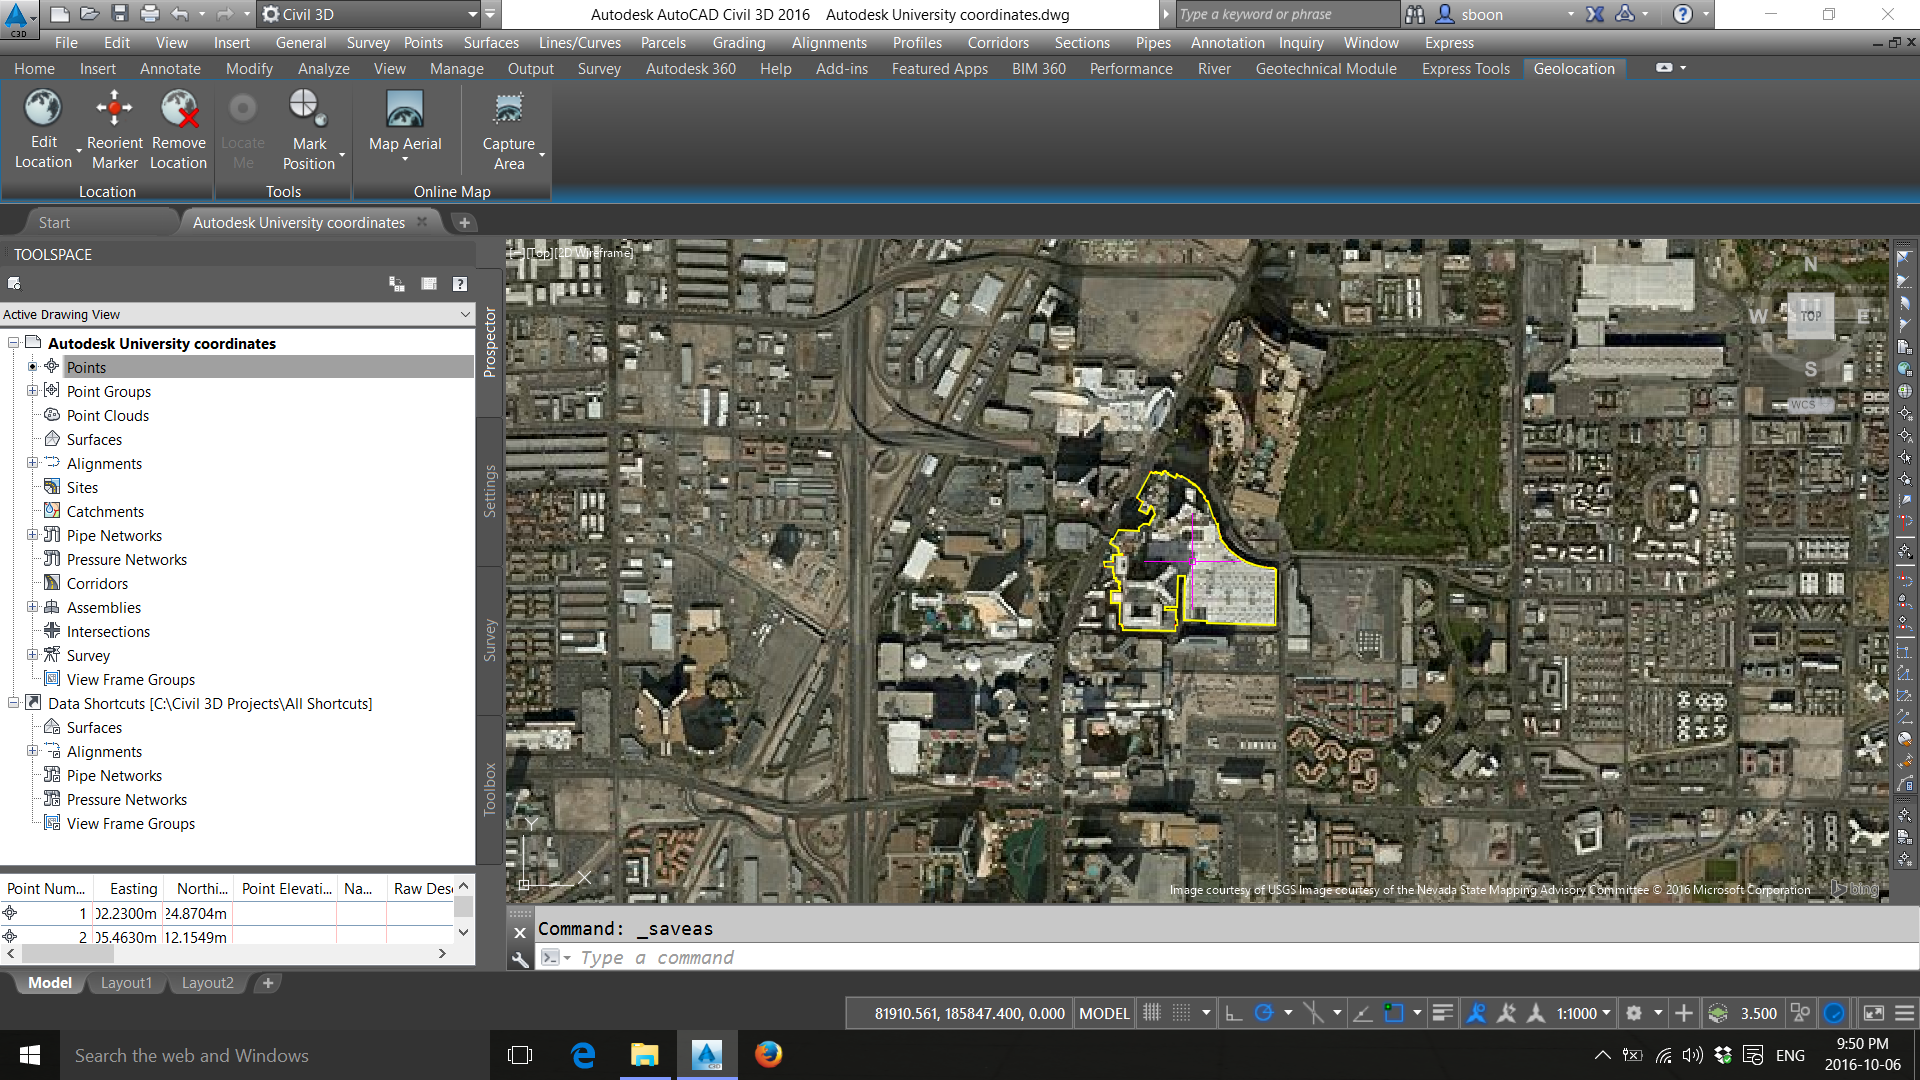 Setting up coordinate systems for bing maps and other gis data setting up coordinate systems for bing maps and other gis data autodesk community civil 3d gumiabroncs Gallery